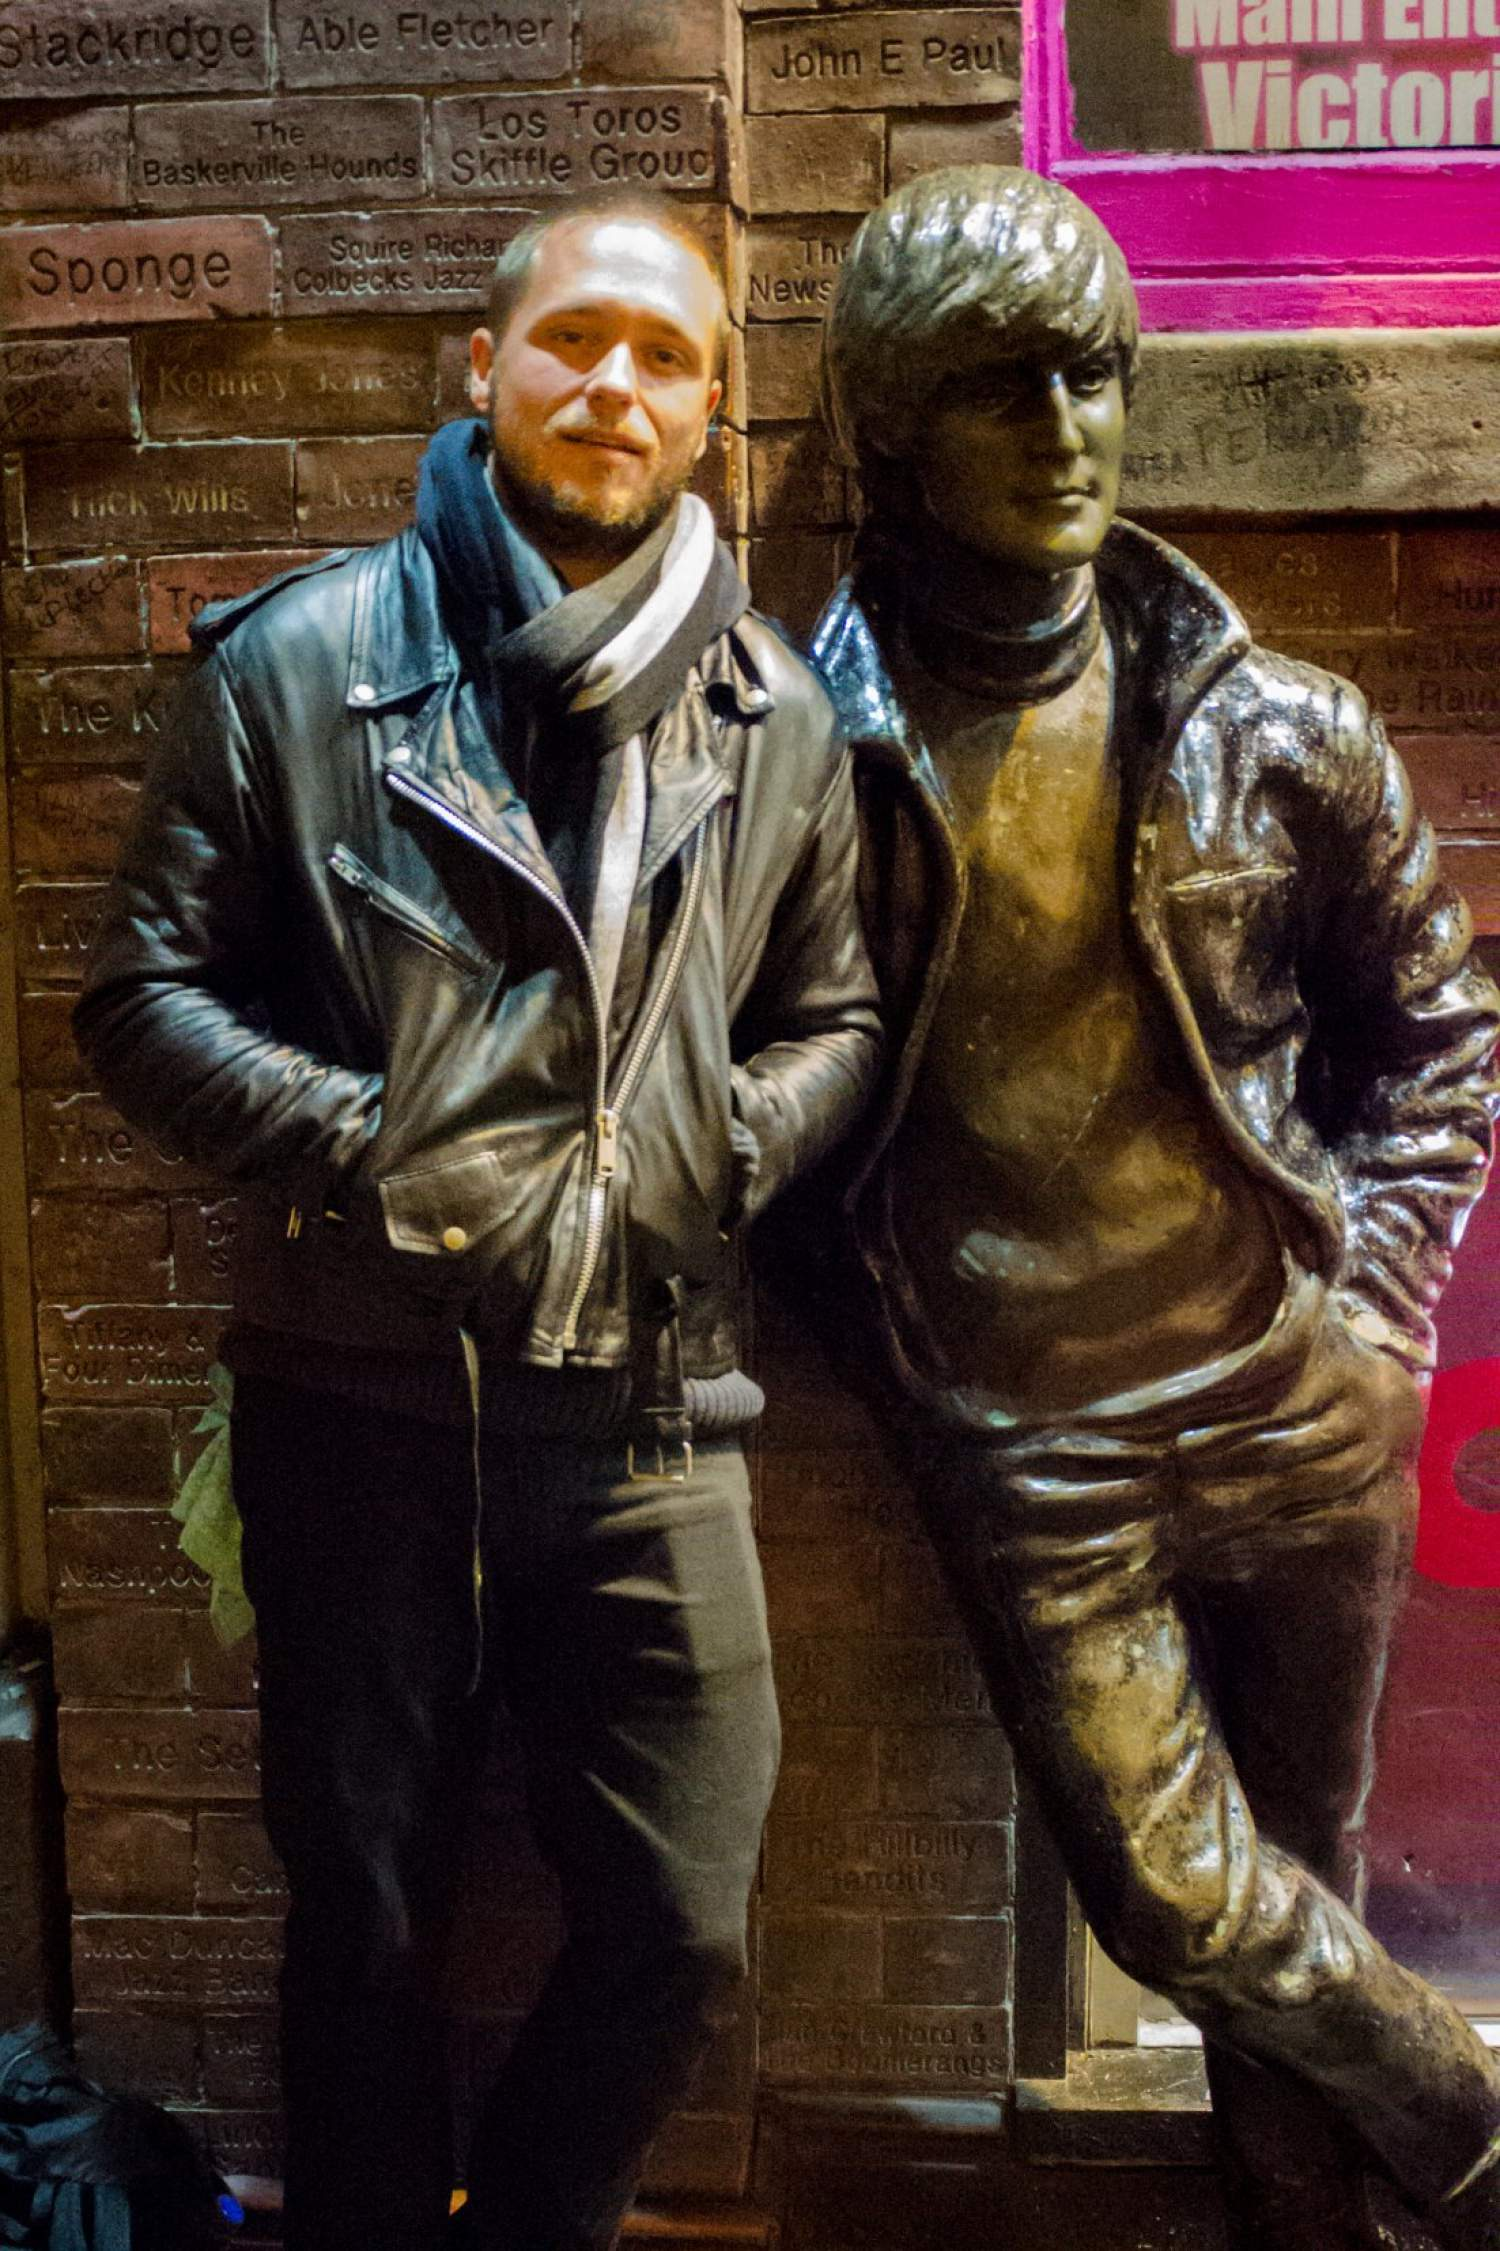 Statue of John Lennon at The Cavern bar